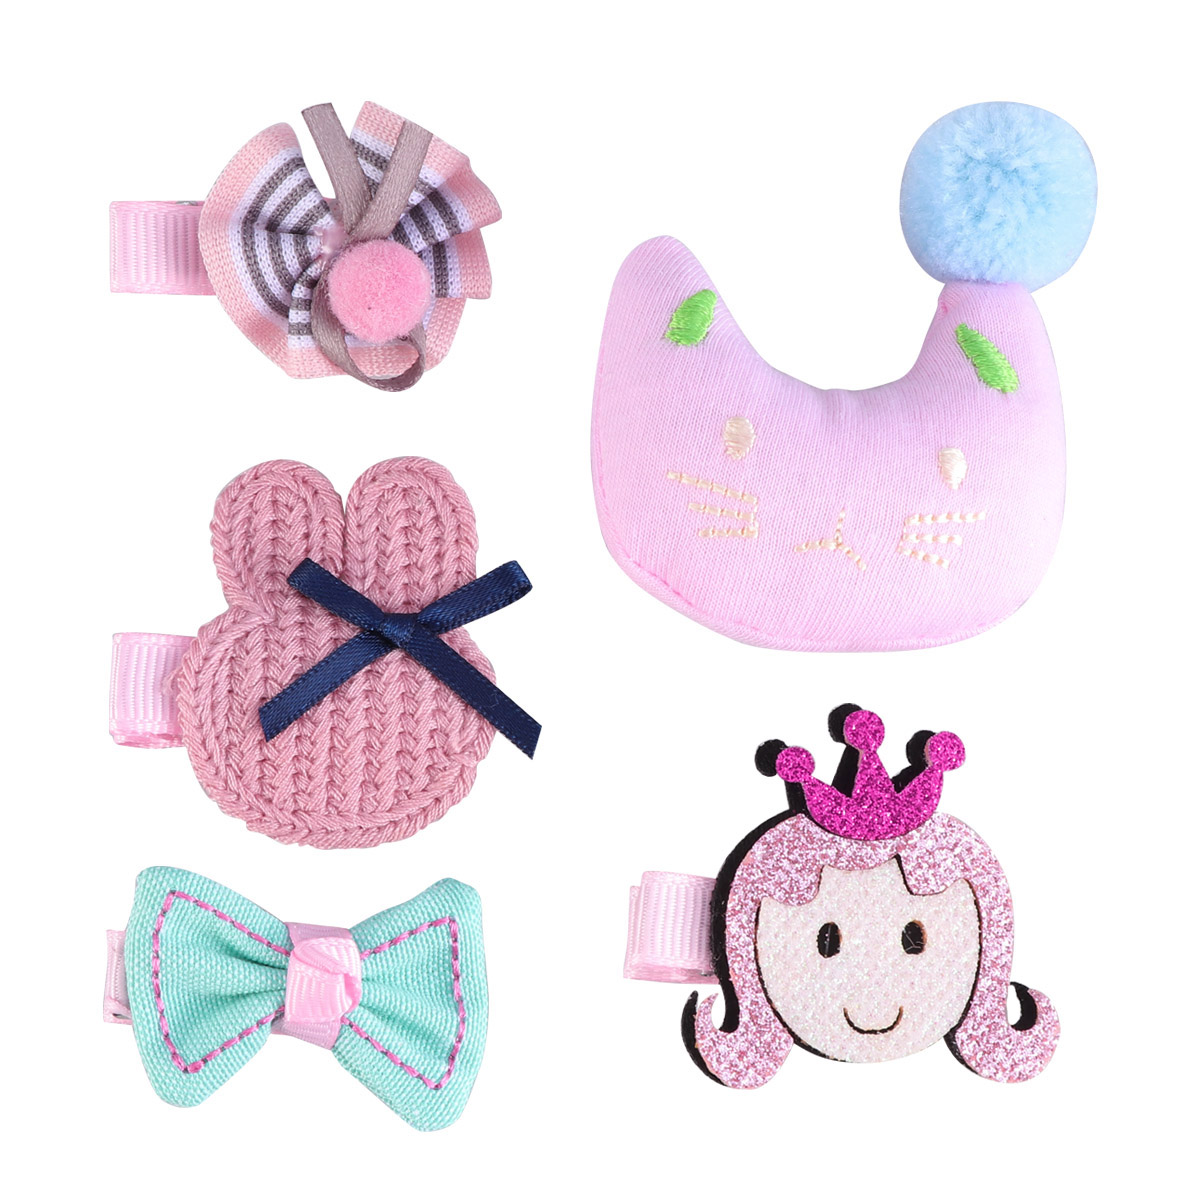 5pcs Hair Pins Cartoon Cloth Art Cute Colorful Hairpins Side Clips Hairclips Headdress Headwear for Children Girls Kids